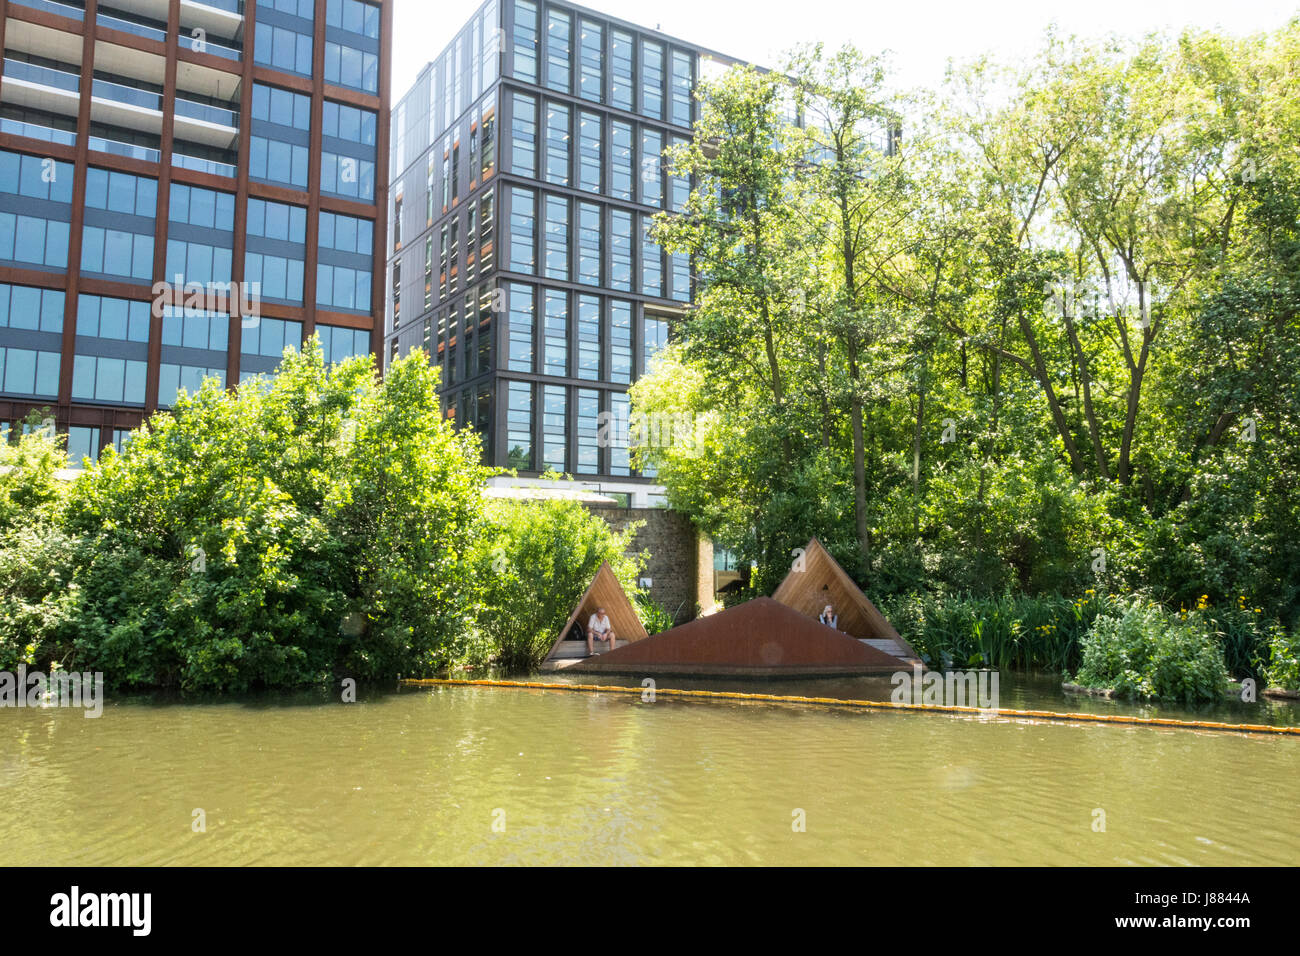 The Viewpoint in Camley Street Natural Park near King's Cross in London, England, UK. Stock Photo